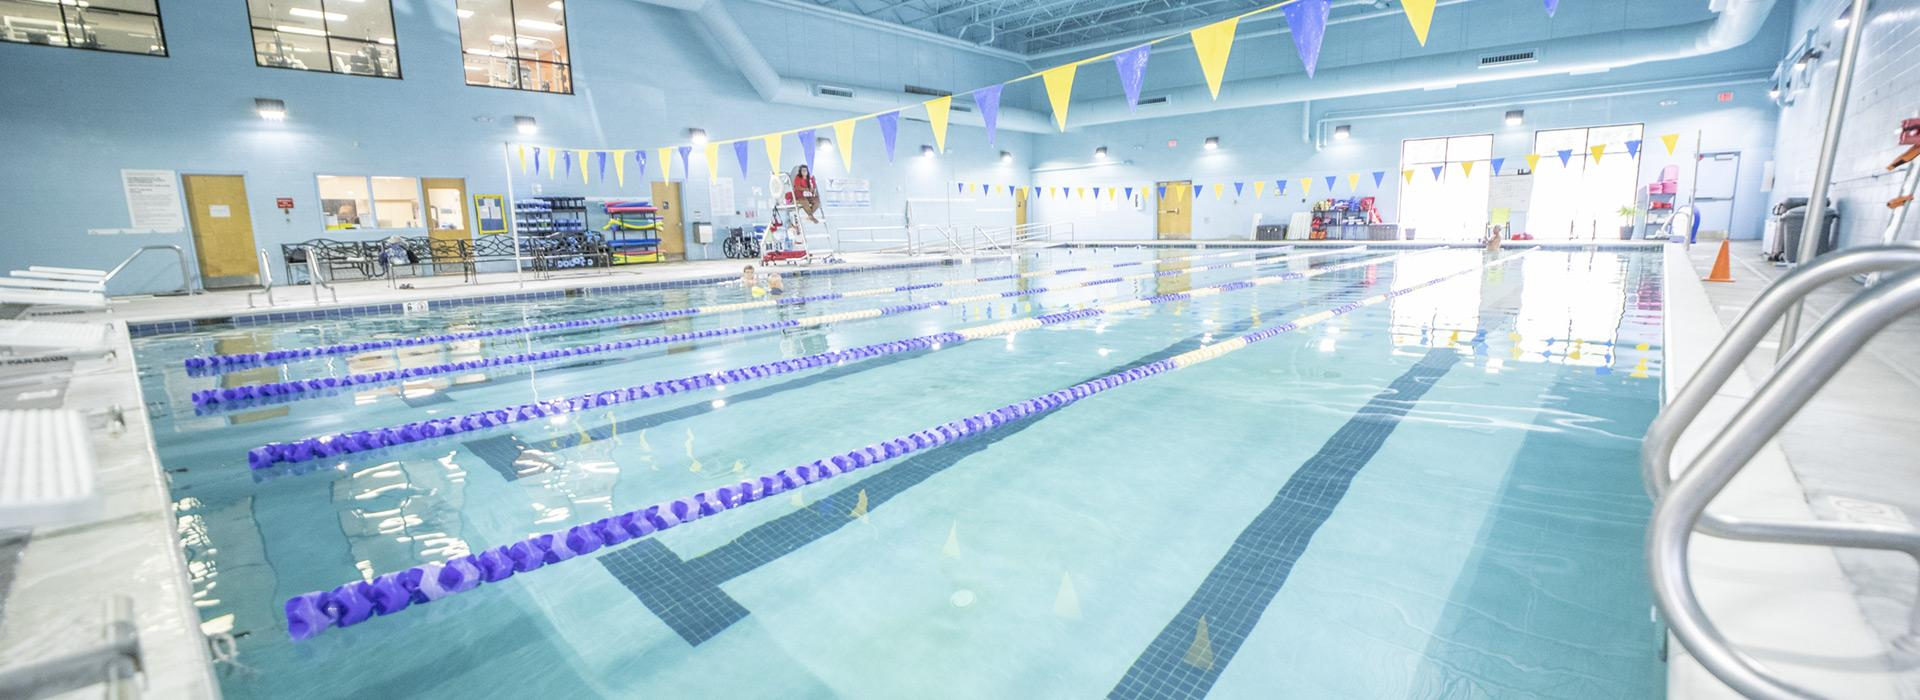 Indoor lap lane pool at the Albemarle Family YMCA